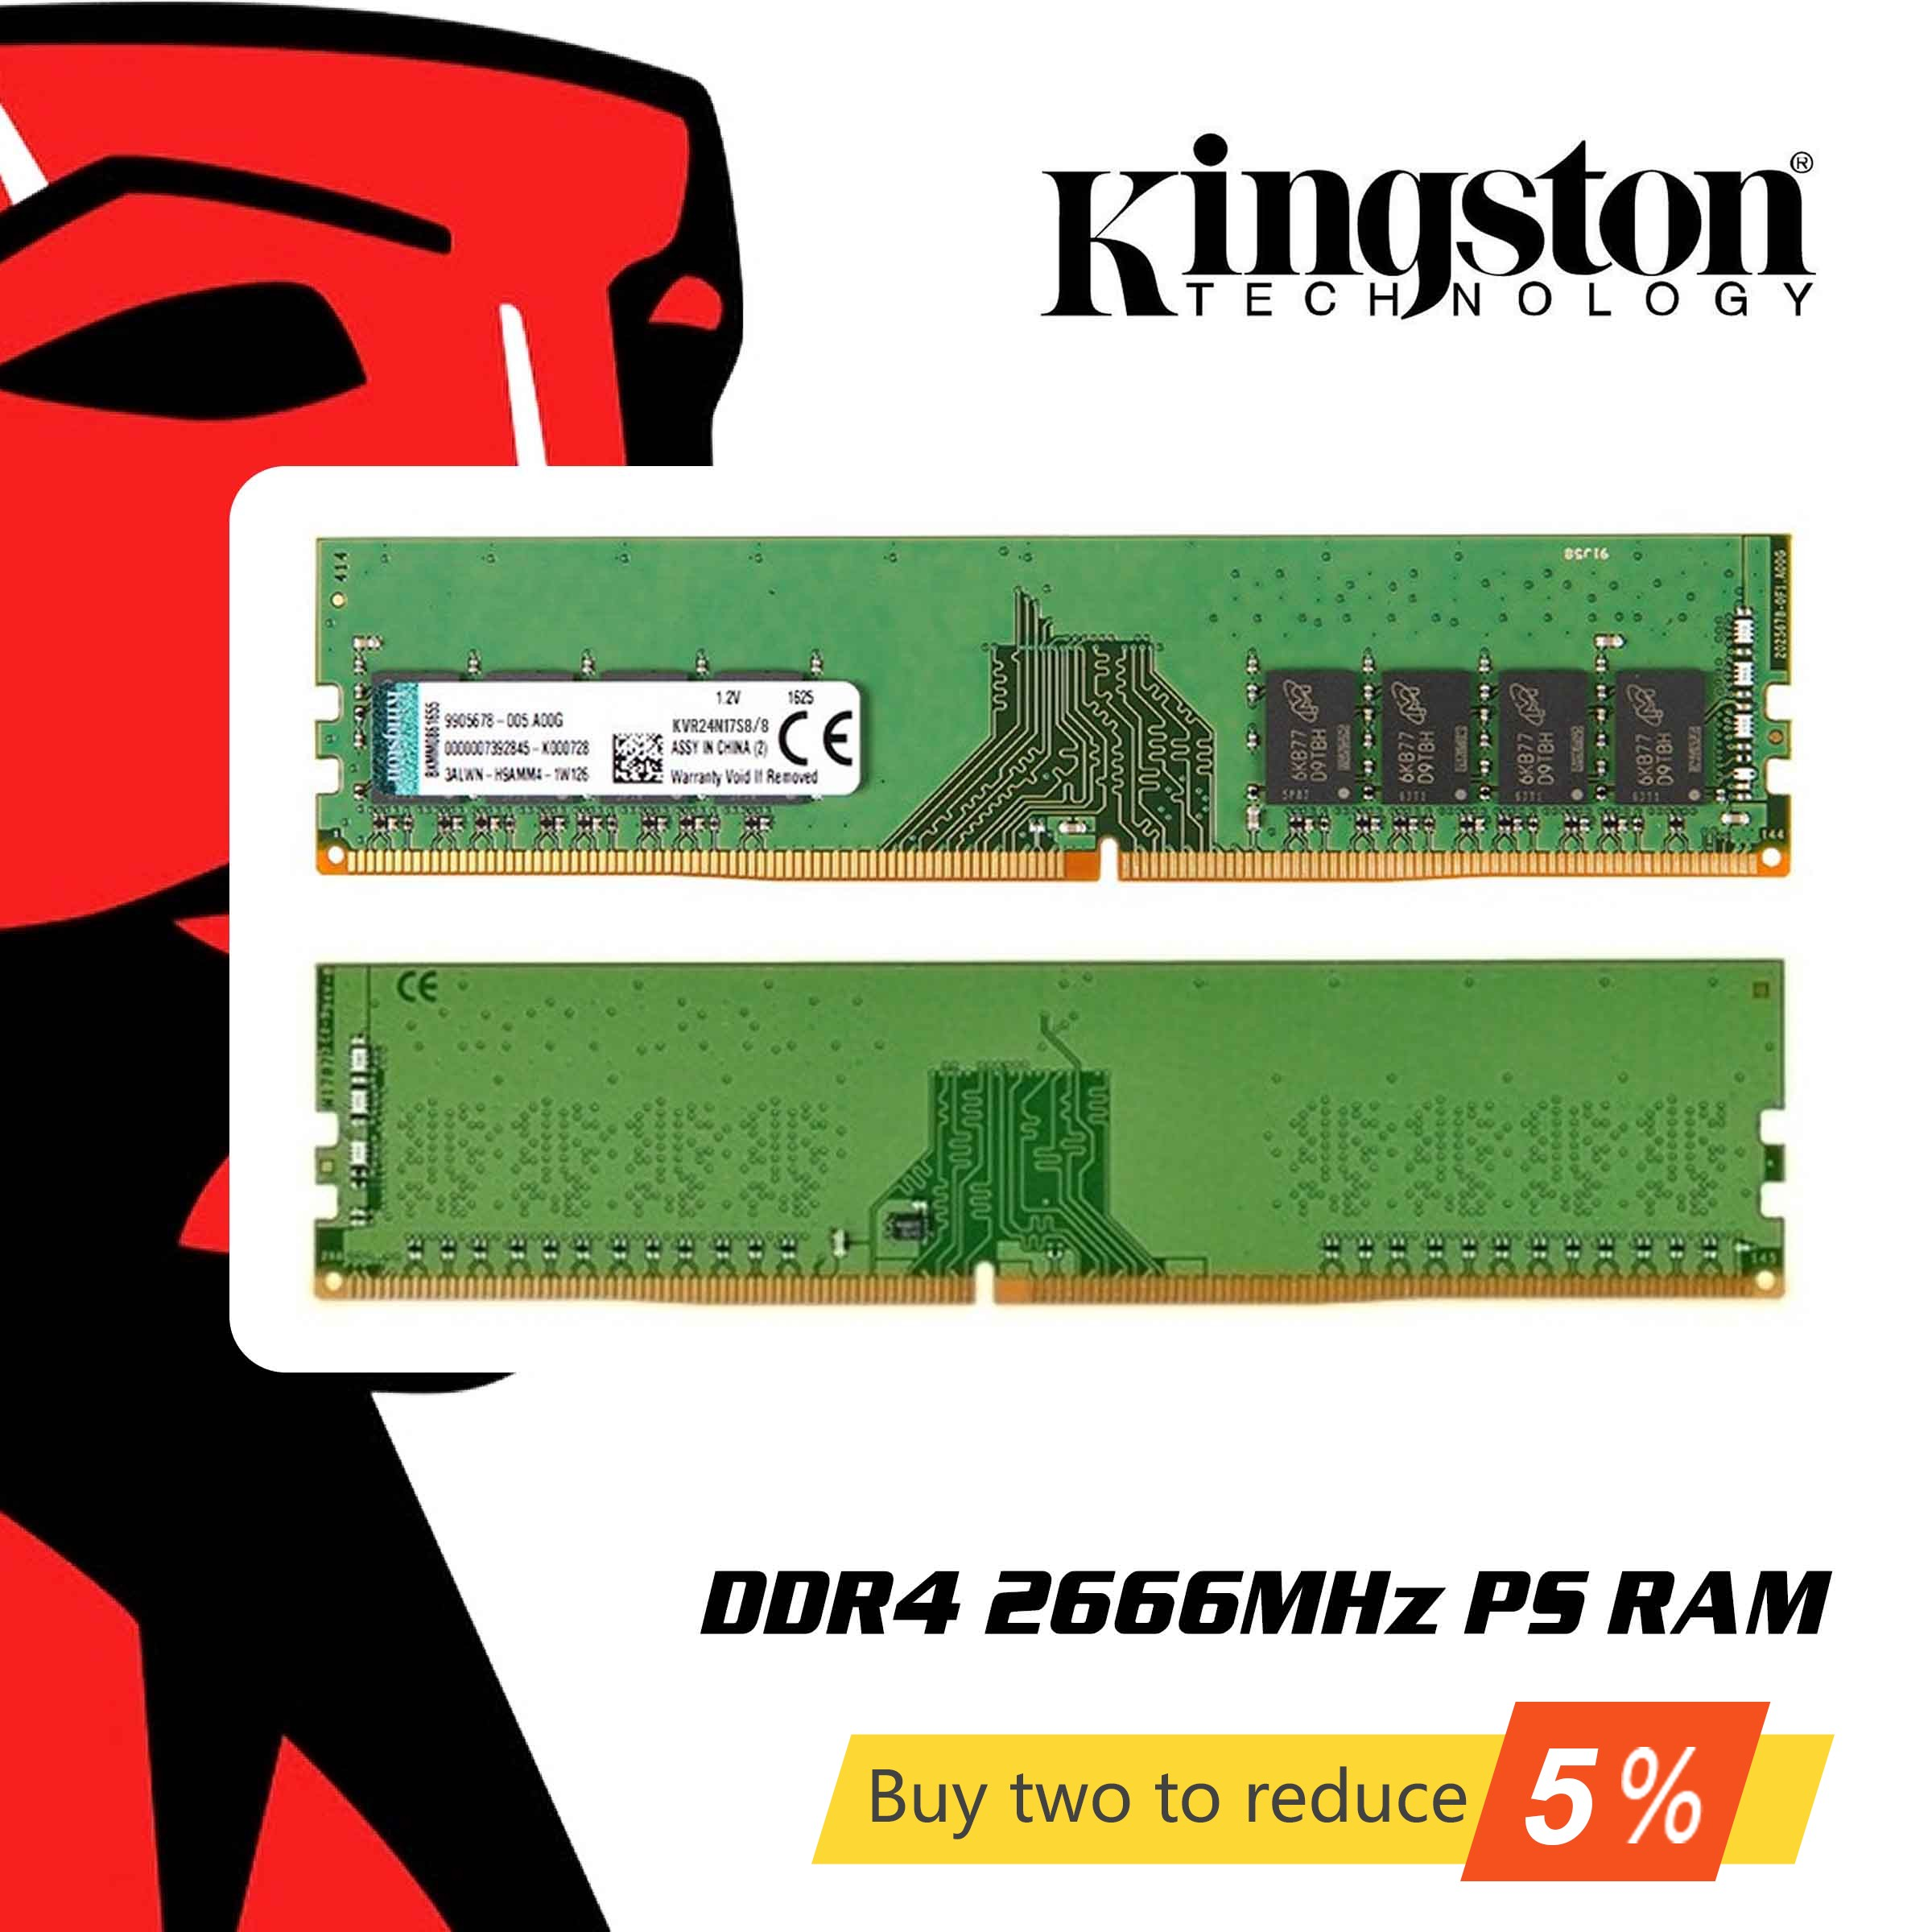 Original Kingston <font><b>DDR4</b></font> RAM Memory <font><b>8GB</b></font> 4GB 16GB 2666Mhz <font><b>Memoria</b></font> DDR 4 8 16 Gigabytes Gigs Sticks for Desktop PC <font><b>Notebook</b></font> Laptop image